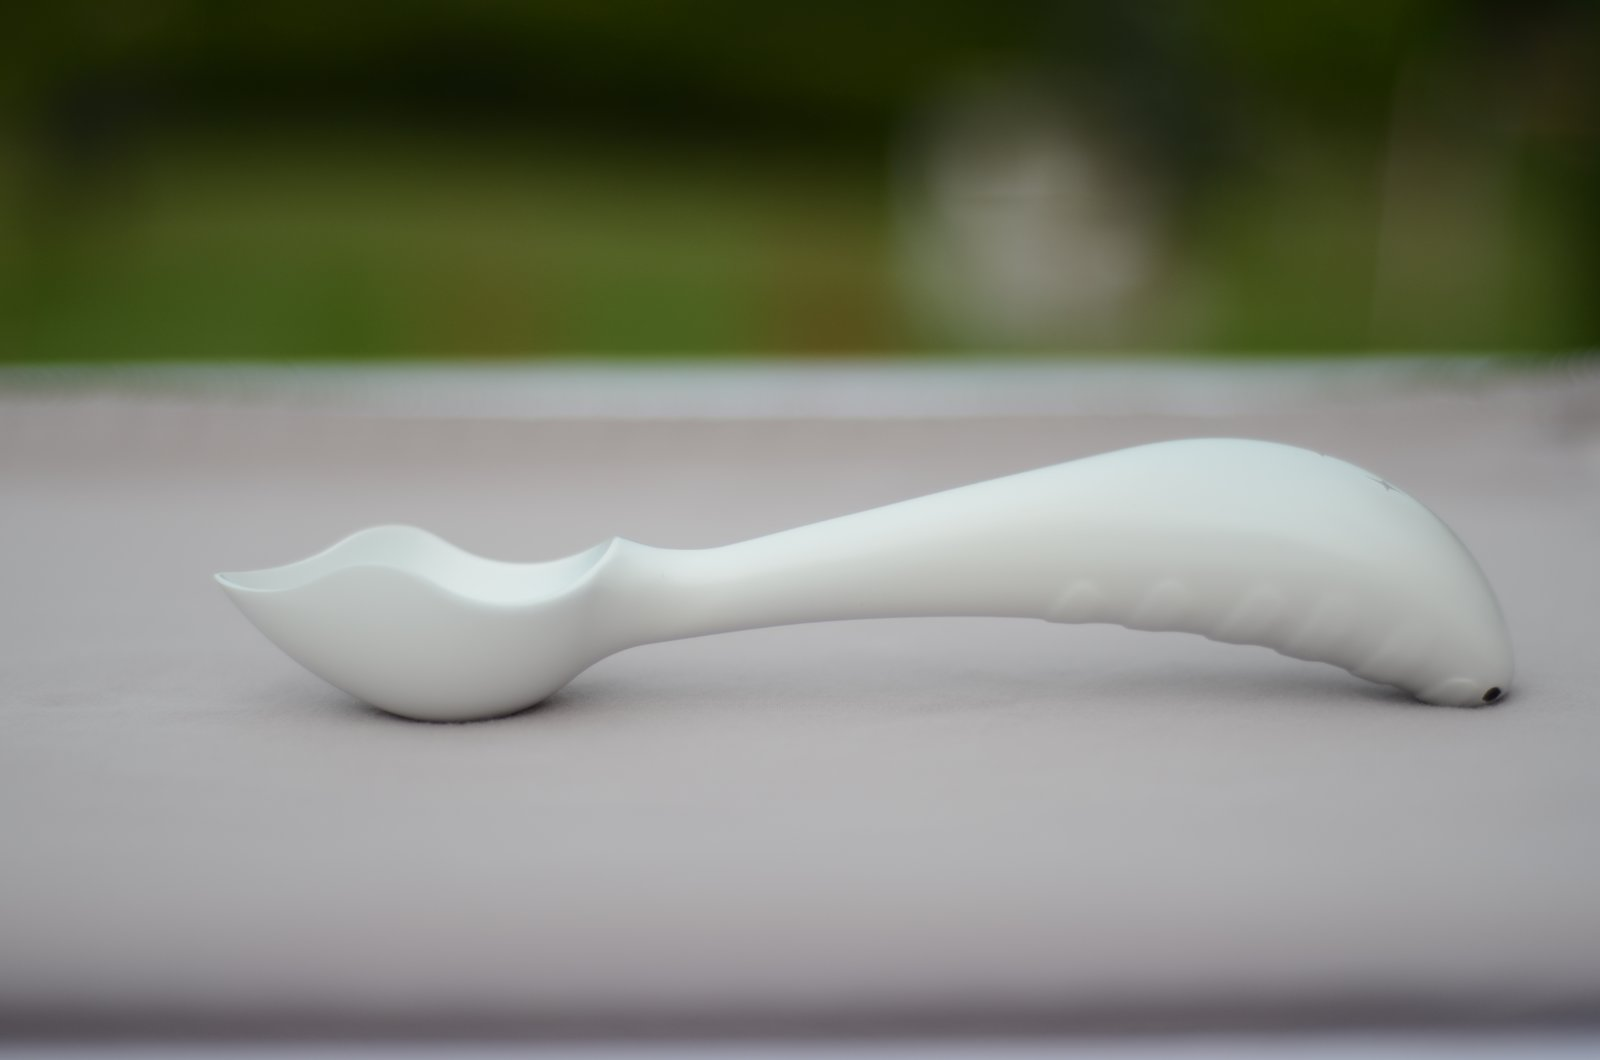 Creator Michael Chou took the ergonomically flawed design of the typical ice cream scoop, and angled it and added a grip so that it takes less effort to use. Chou, a 35-year-old father and aerospace engineer from Michigan, went through 38 iterations over two years of development before settling on the design.  The World's First Ergonomic Ice Cream Scoop? by Alexander George